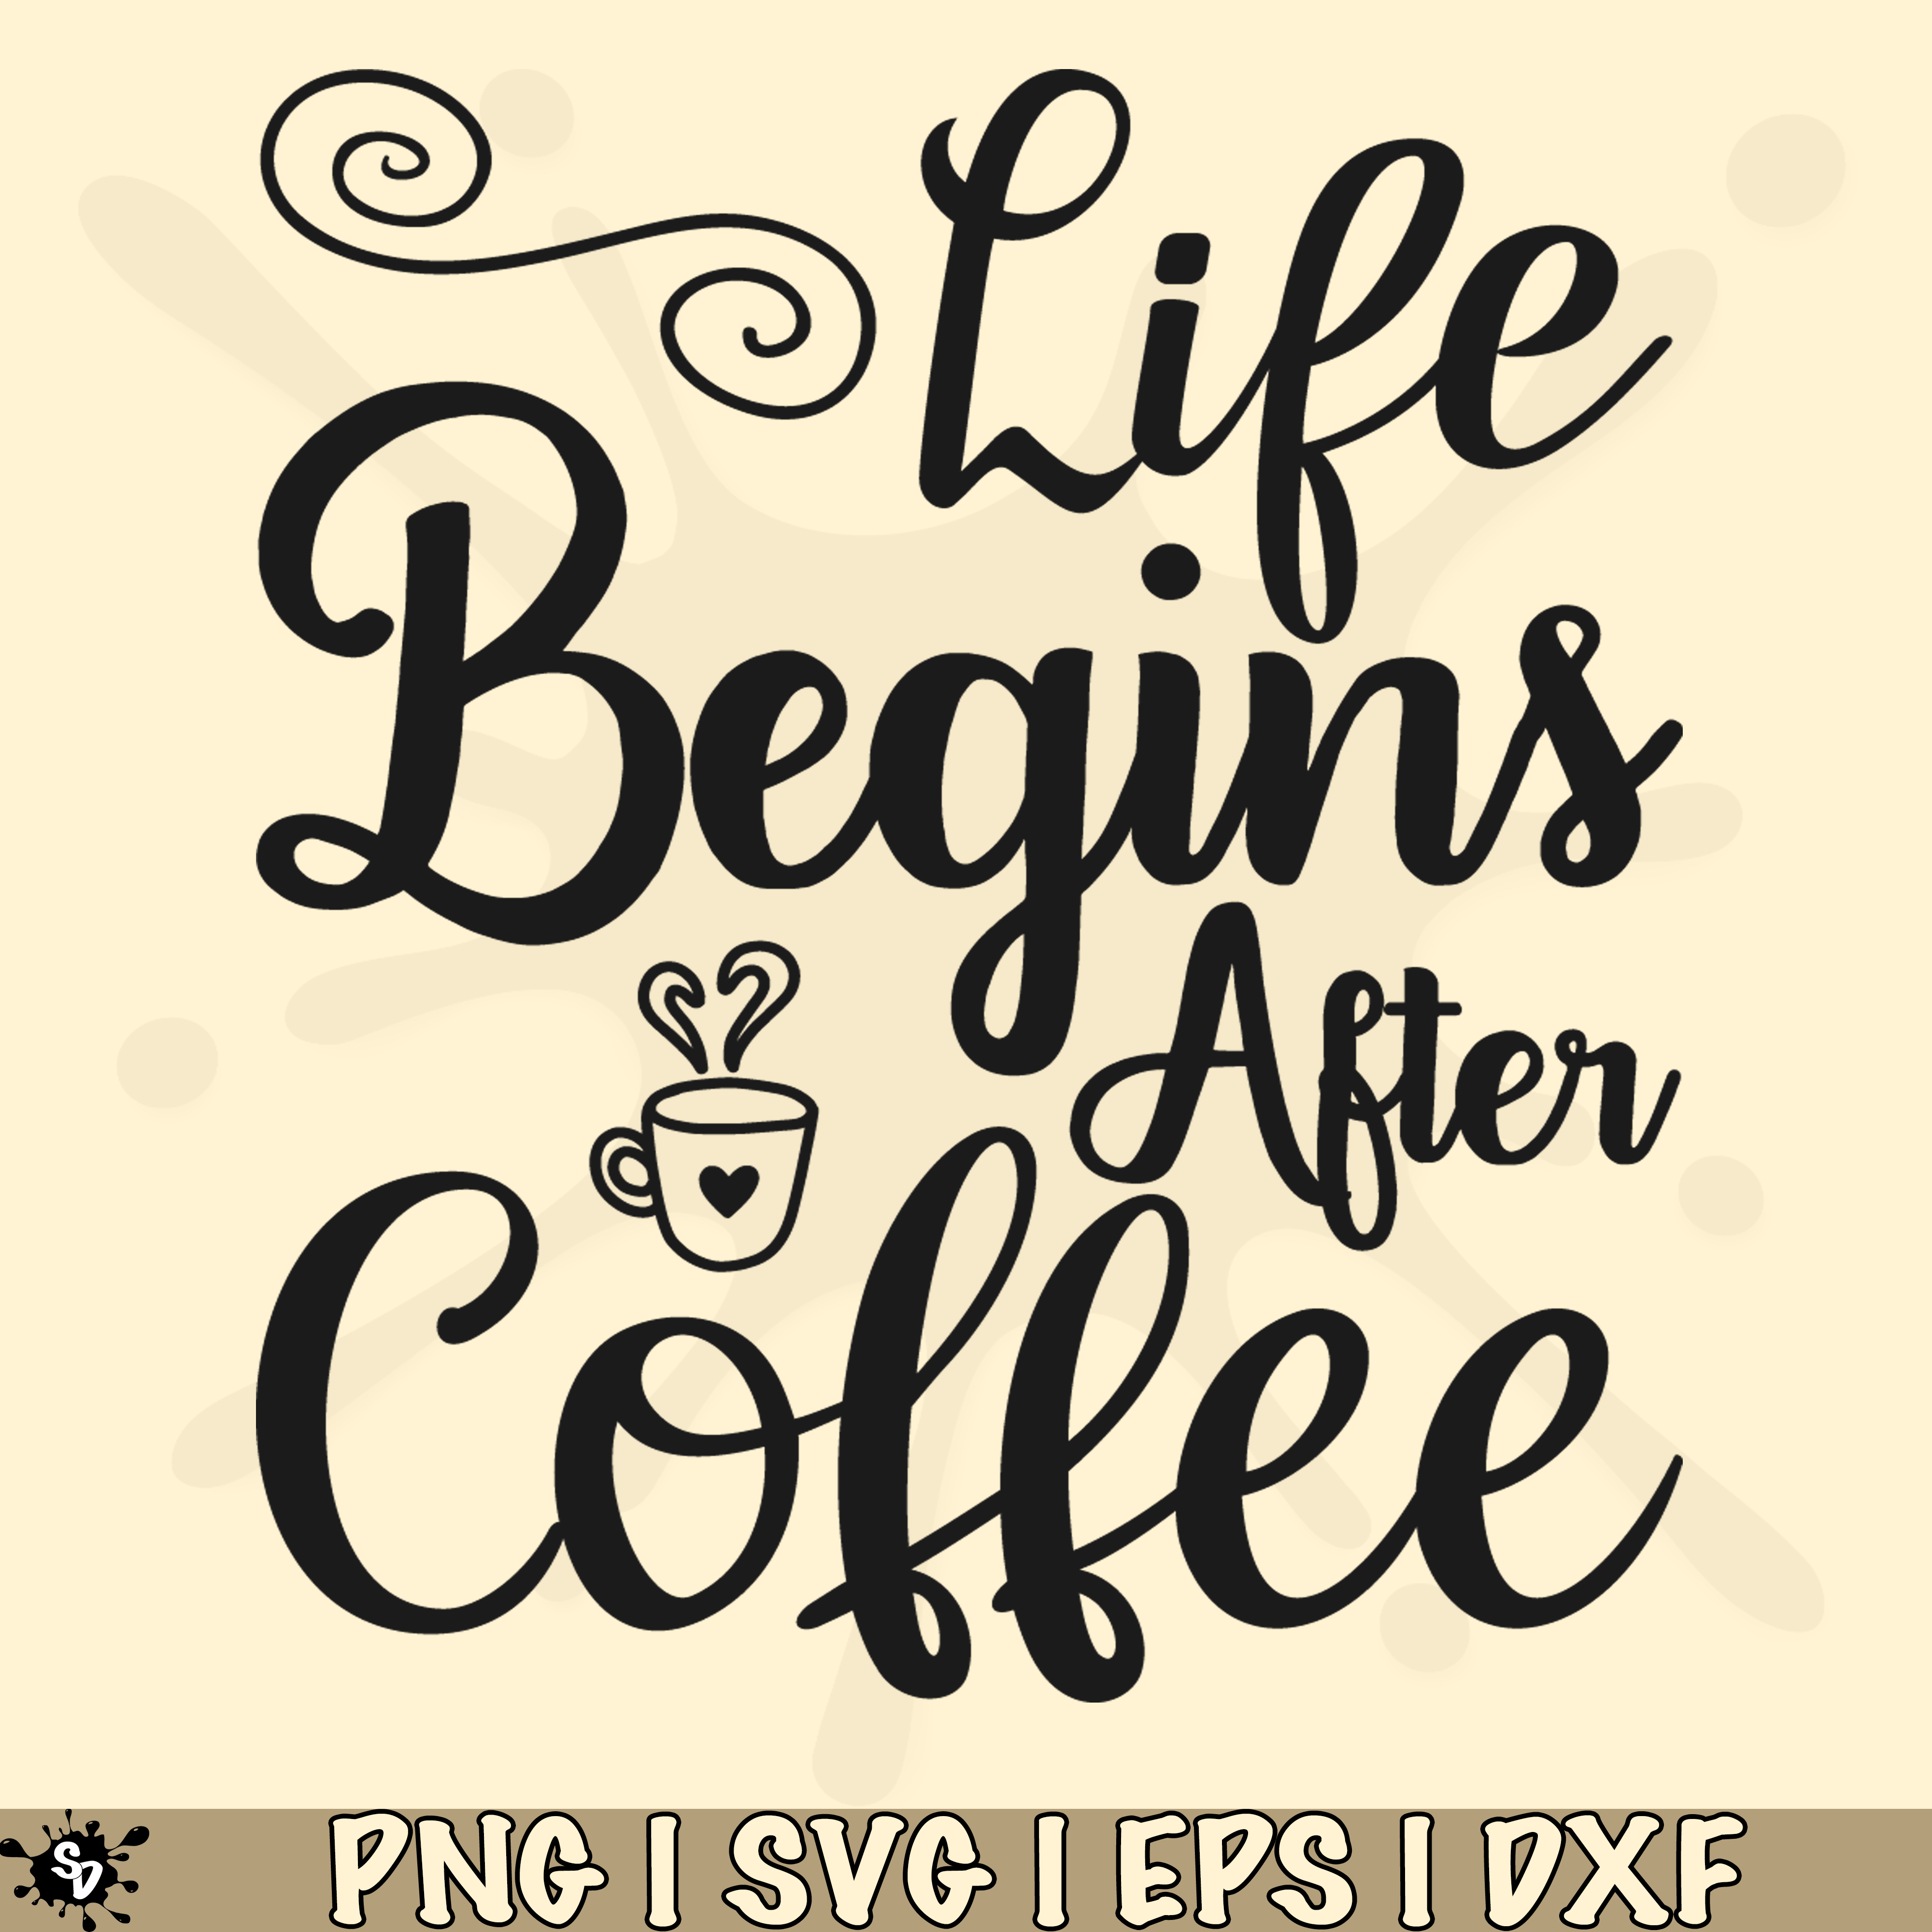 Coffee Quotes Svg 3 99 For 36 Designs Svg Png Dxf Eps Coffee Coffeeart Coffeebreak Coffeel Coffee Quote Svg Coffee Quotes Coffee Quote Shirts